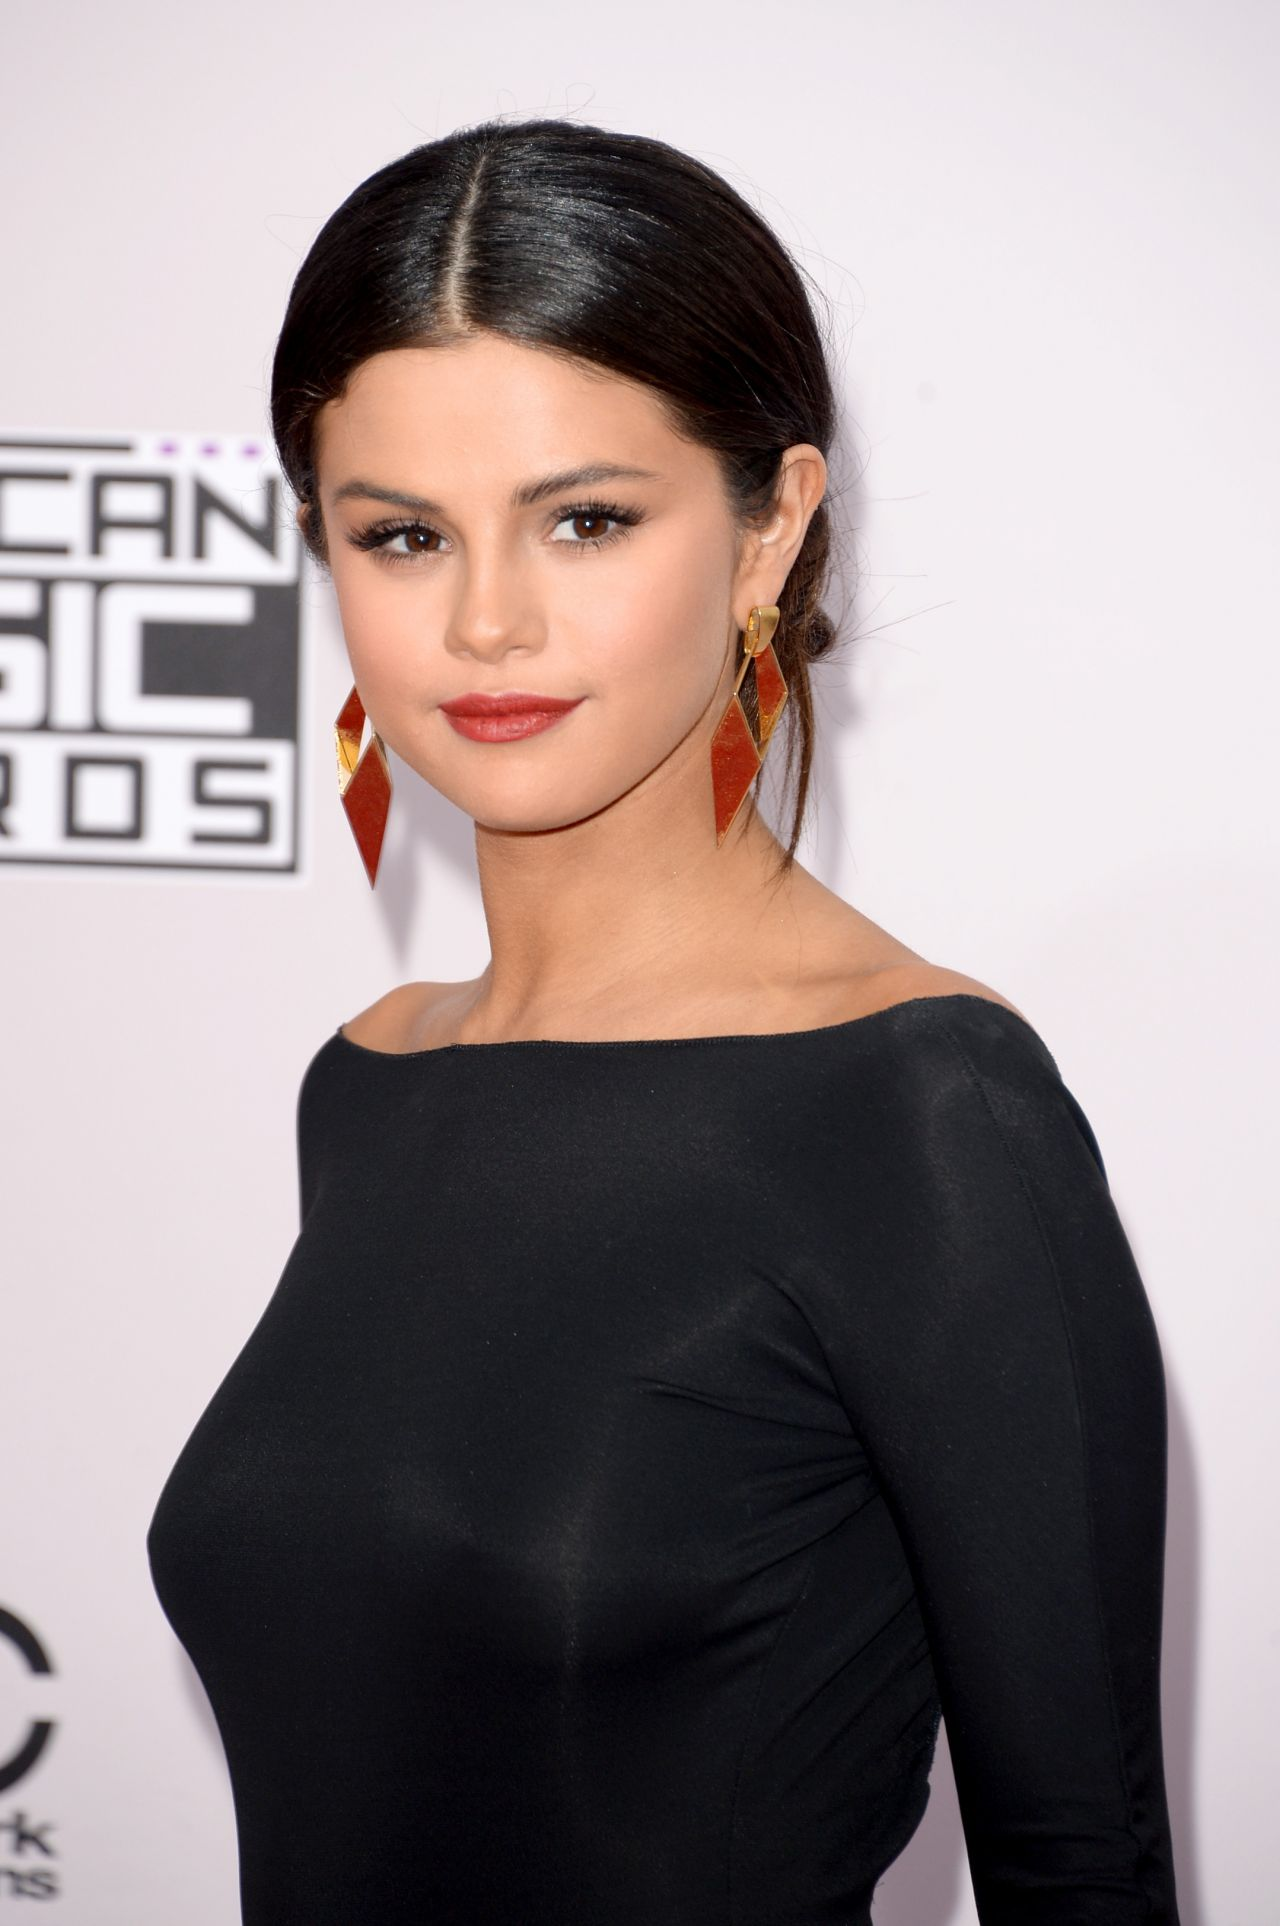 Selena Gomez Red Carpet Photos - 2014 American Music Awards